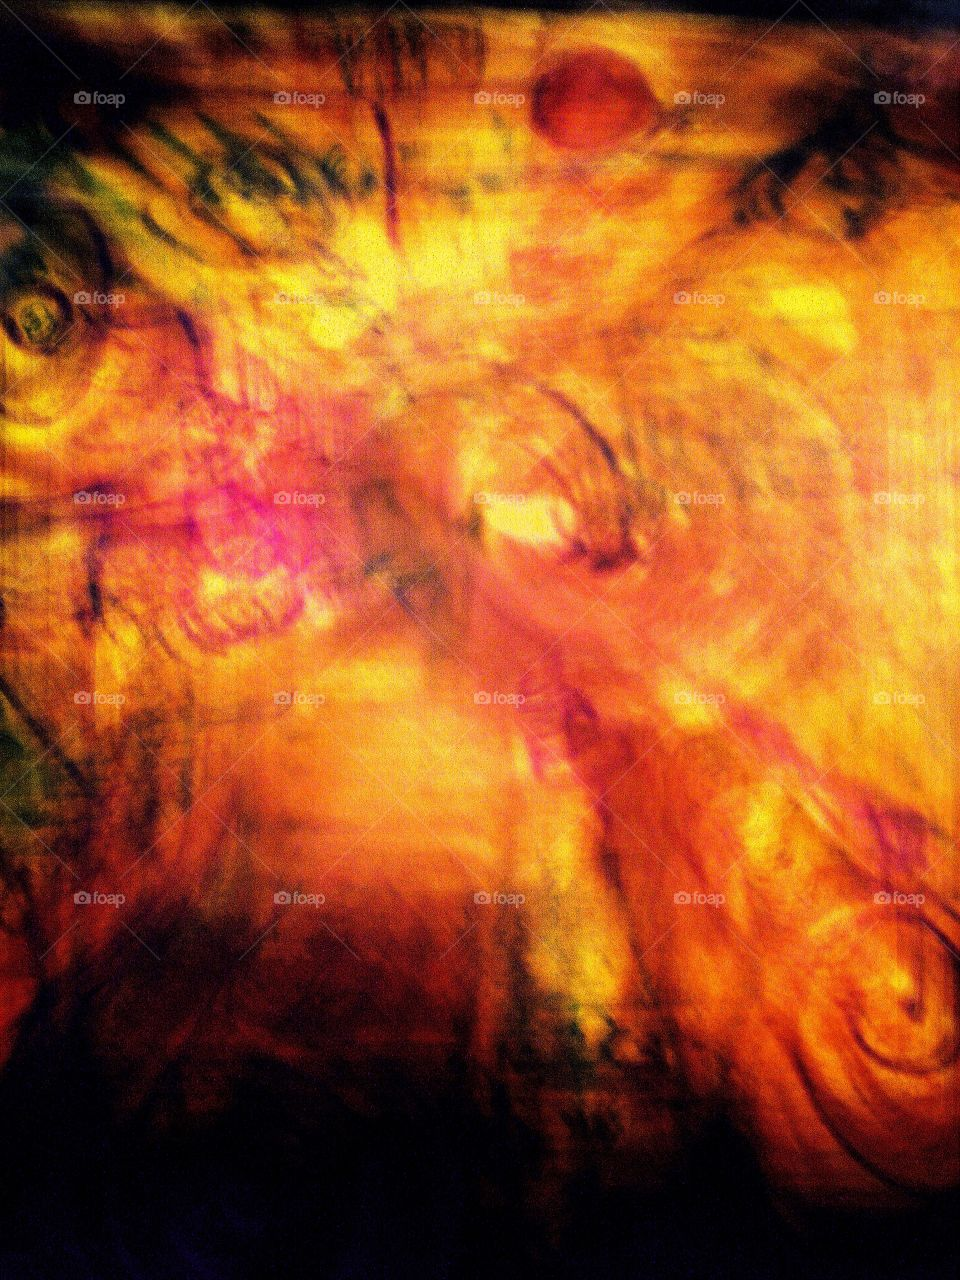 Abstract, Flame, Fantasy, Texture, Art